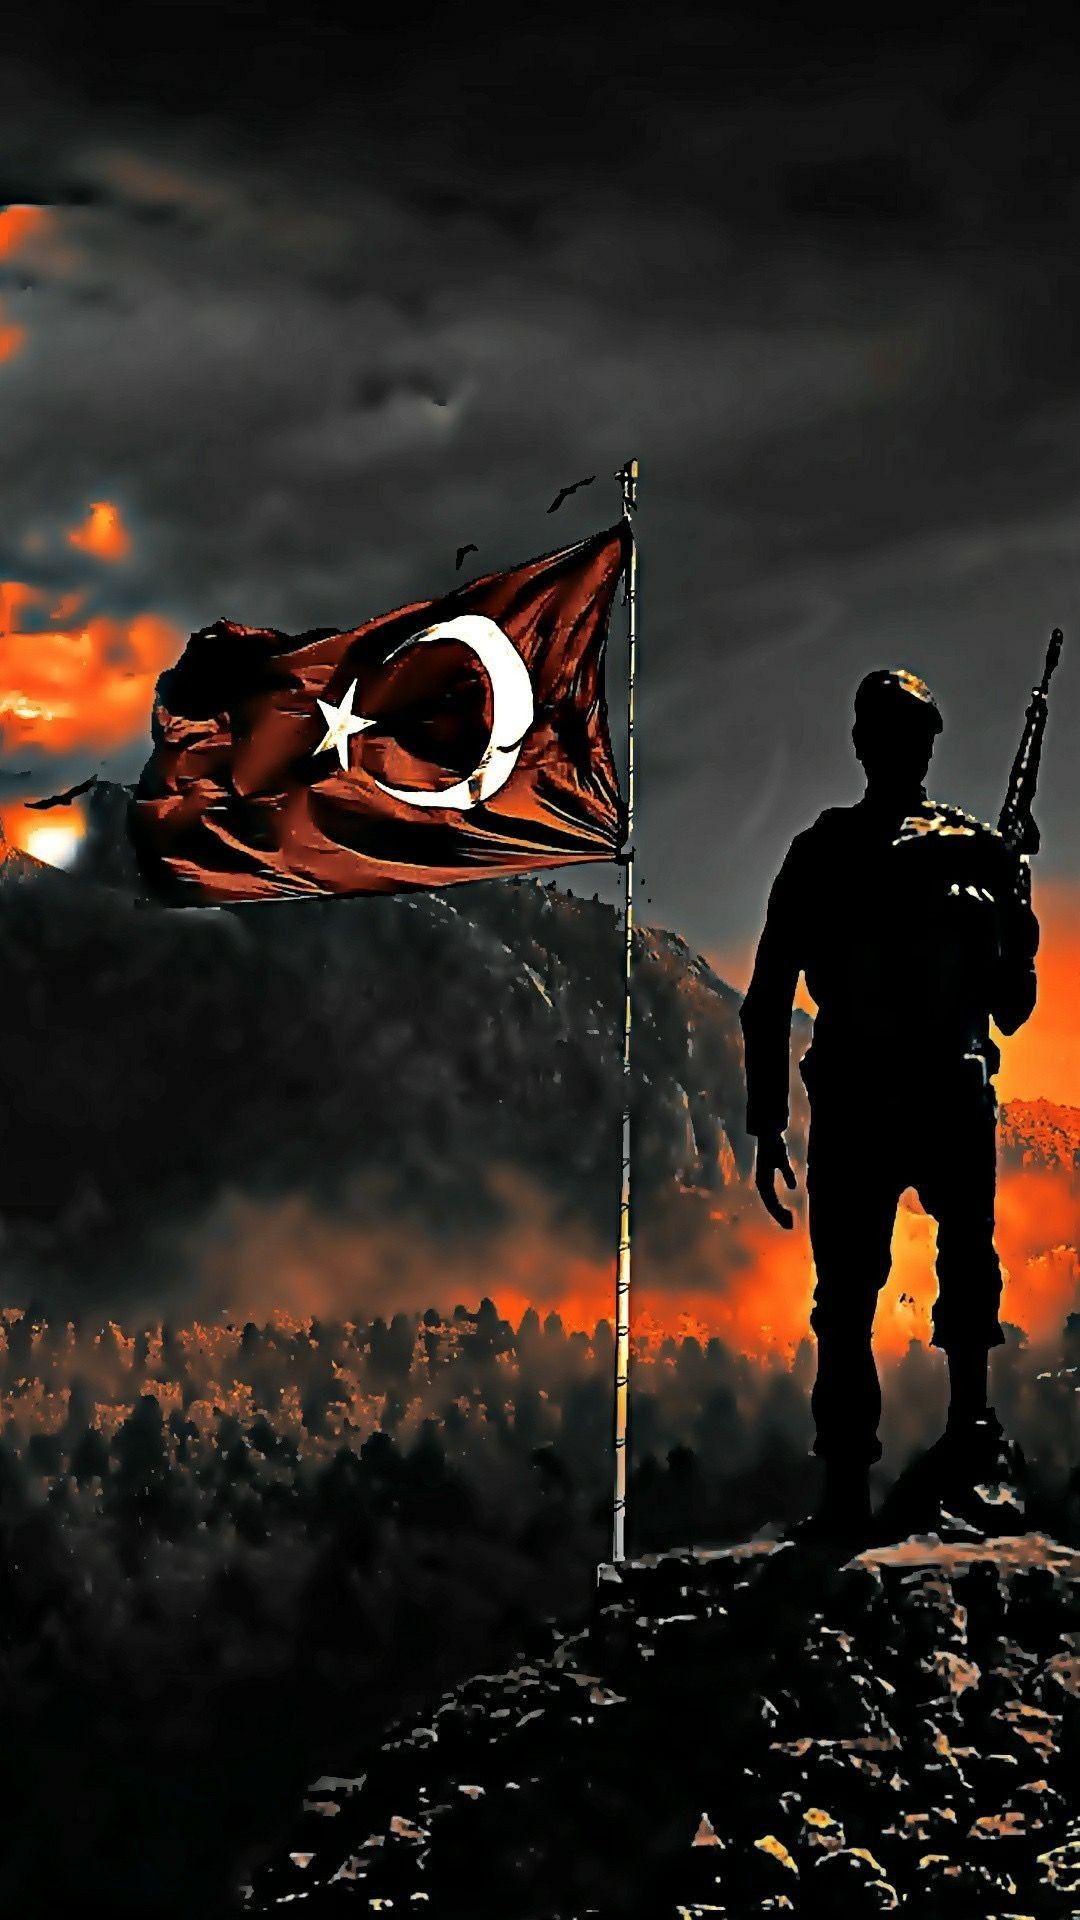 Pin by Arman on Türkiye Turkish army, Studio background